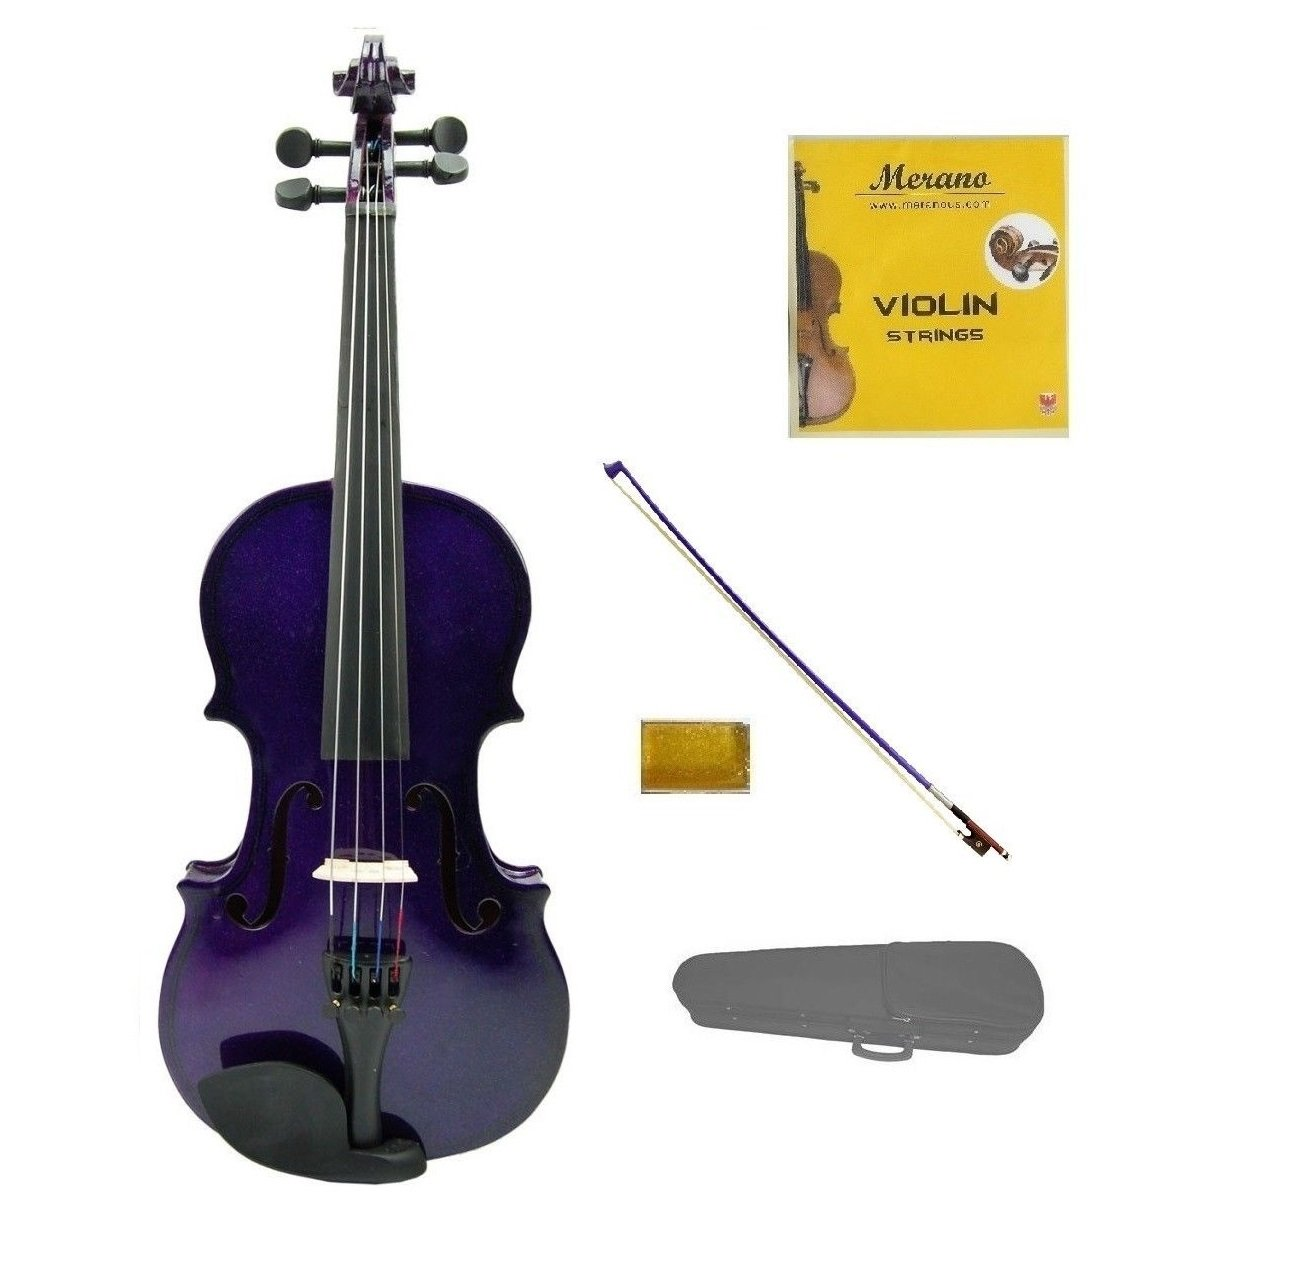 Merano 3/4 Size Purpe Violin with Purple Bow, Case, Free Rosin and Extra Set of Strings for Beginners, Students, Gifts, Toys by Merano